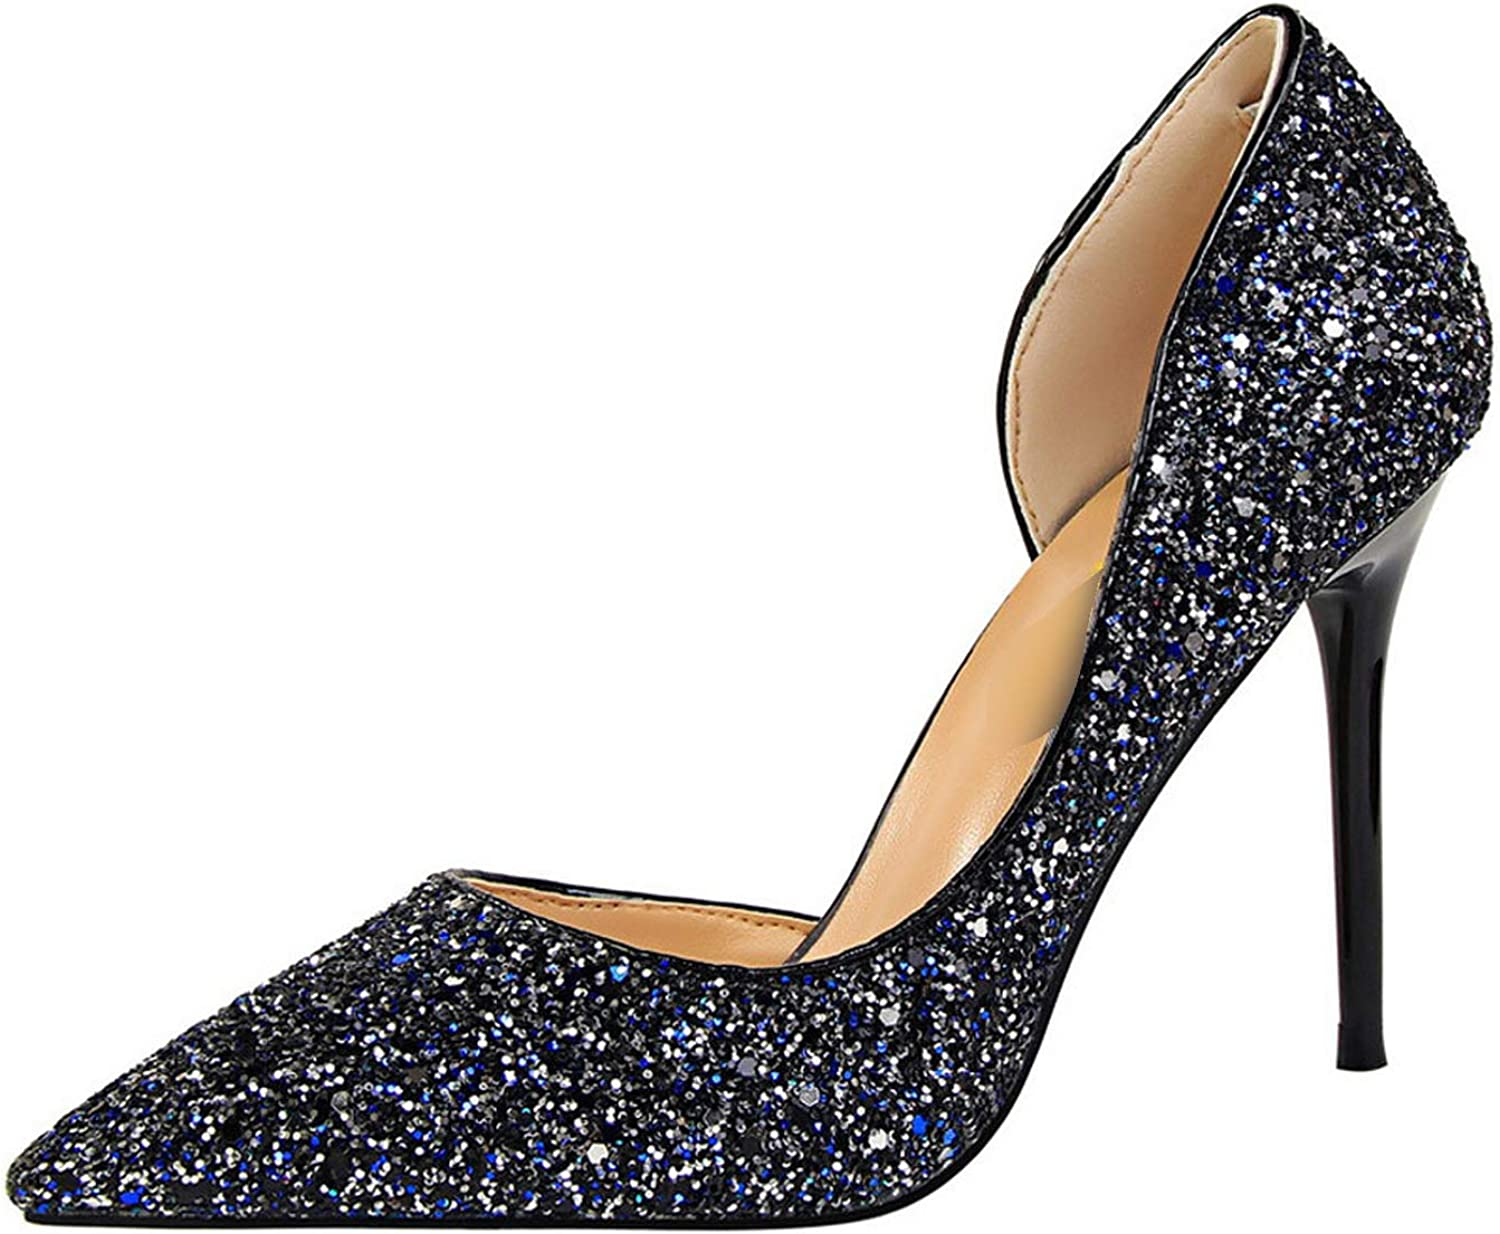 Milk Maniac 2019 Women Pumps Summer shoes Pump Sexy High Heels Lady shoes Thin Heel Sequins Bling,Navy bluee,37